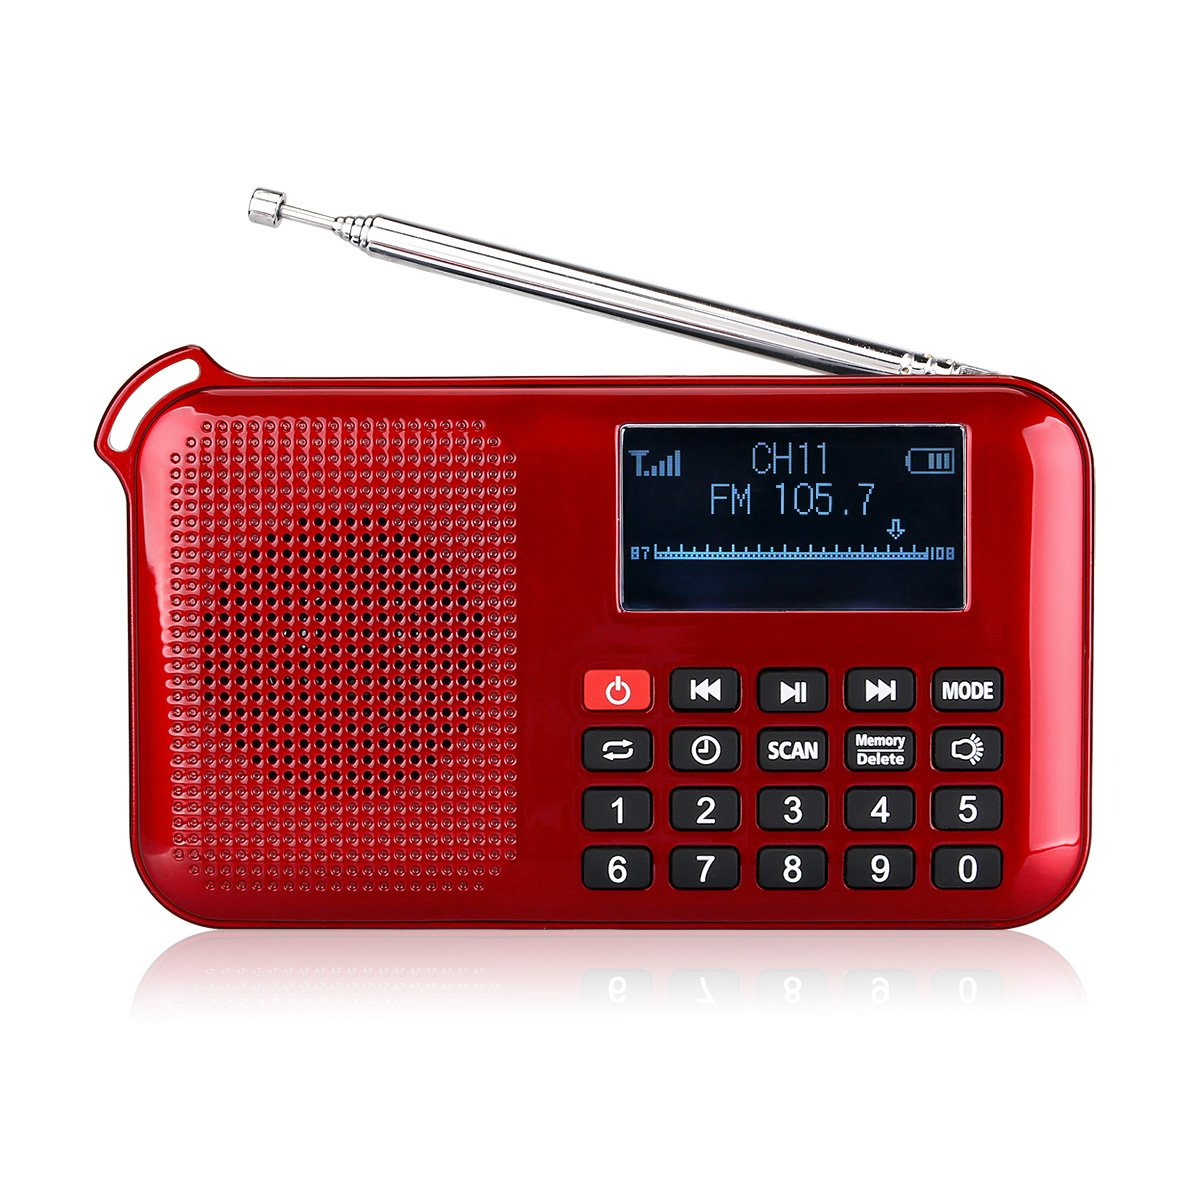 Retekess Portable L-388 Solar Radio Flashlight with FM Mp3 player Speaker Sleep Timer Phone Charger Sleep Timer Rechargeable Battery(Red)